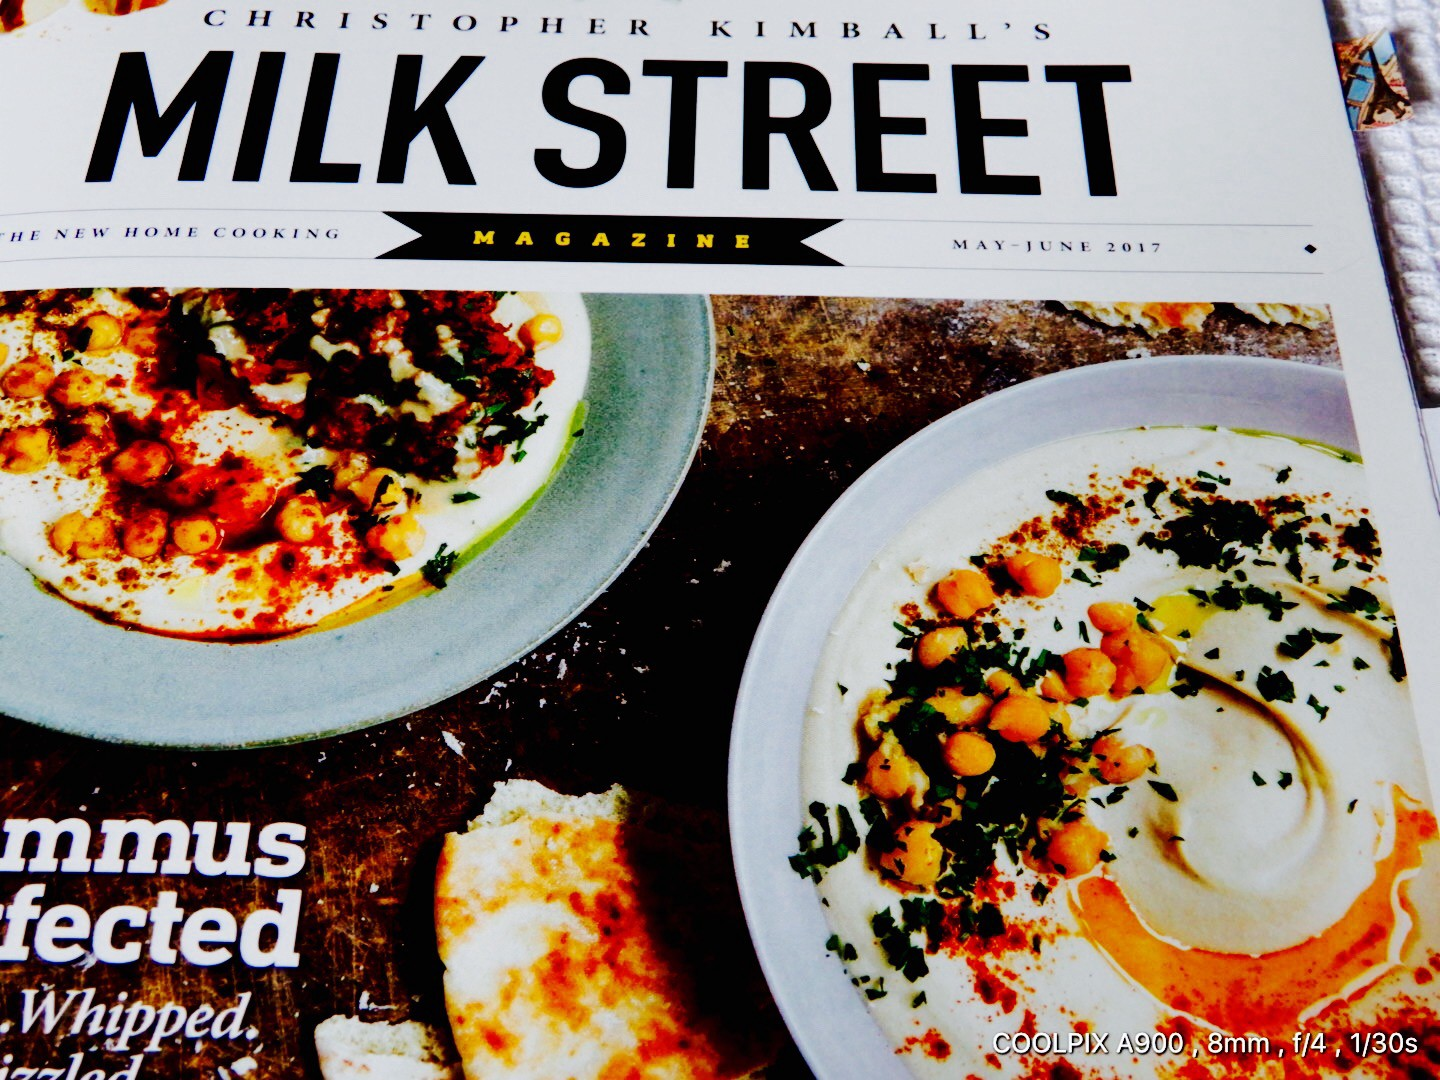 Milk street magazine issue 2